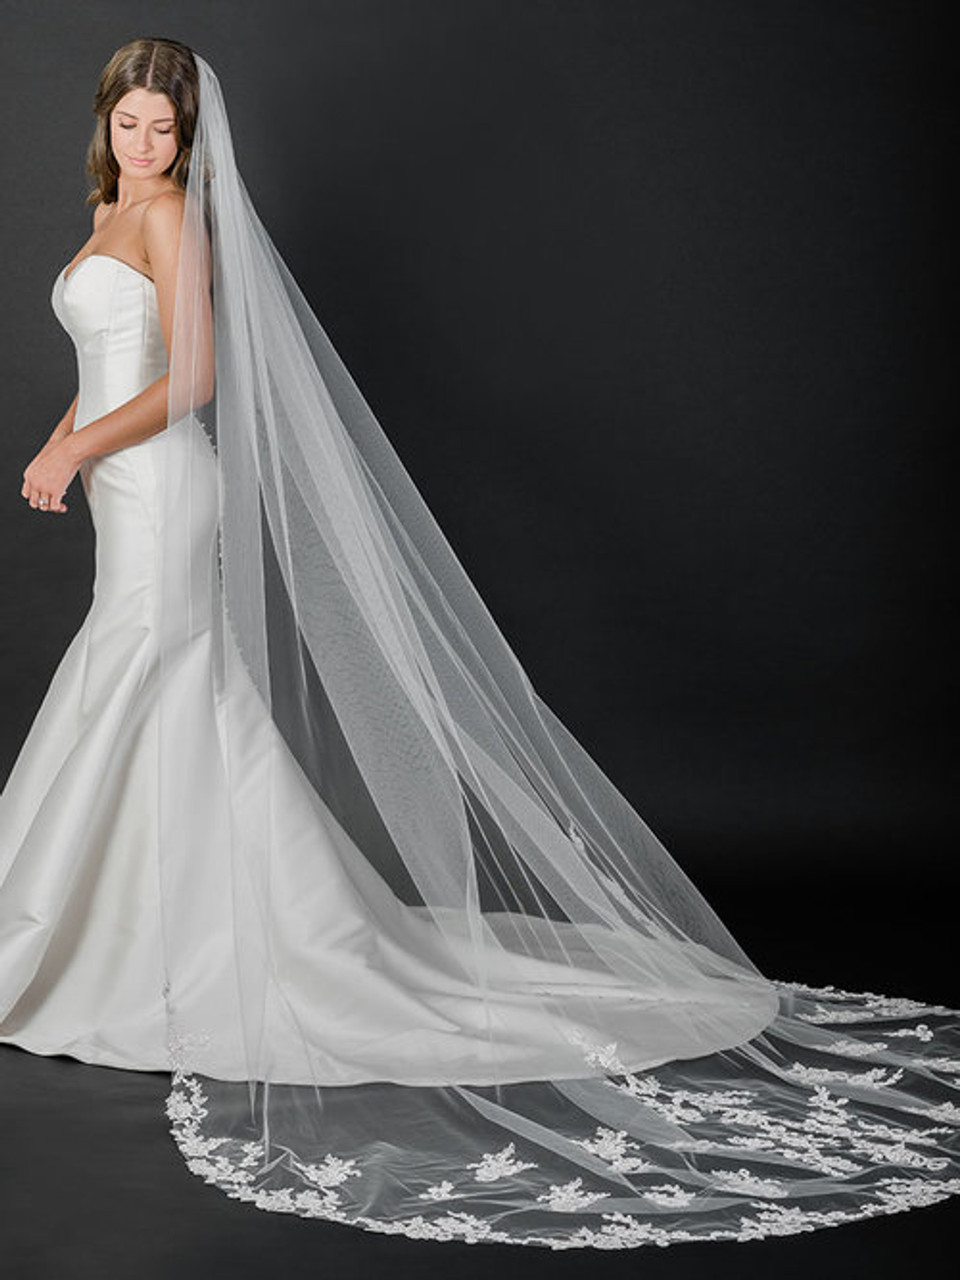 Bel Aire Bridal Veils V7525C - Cathedral veil with rolled edge and Alençon lace and appliqués